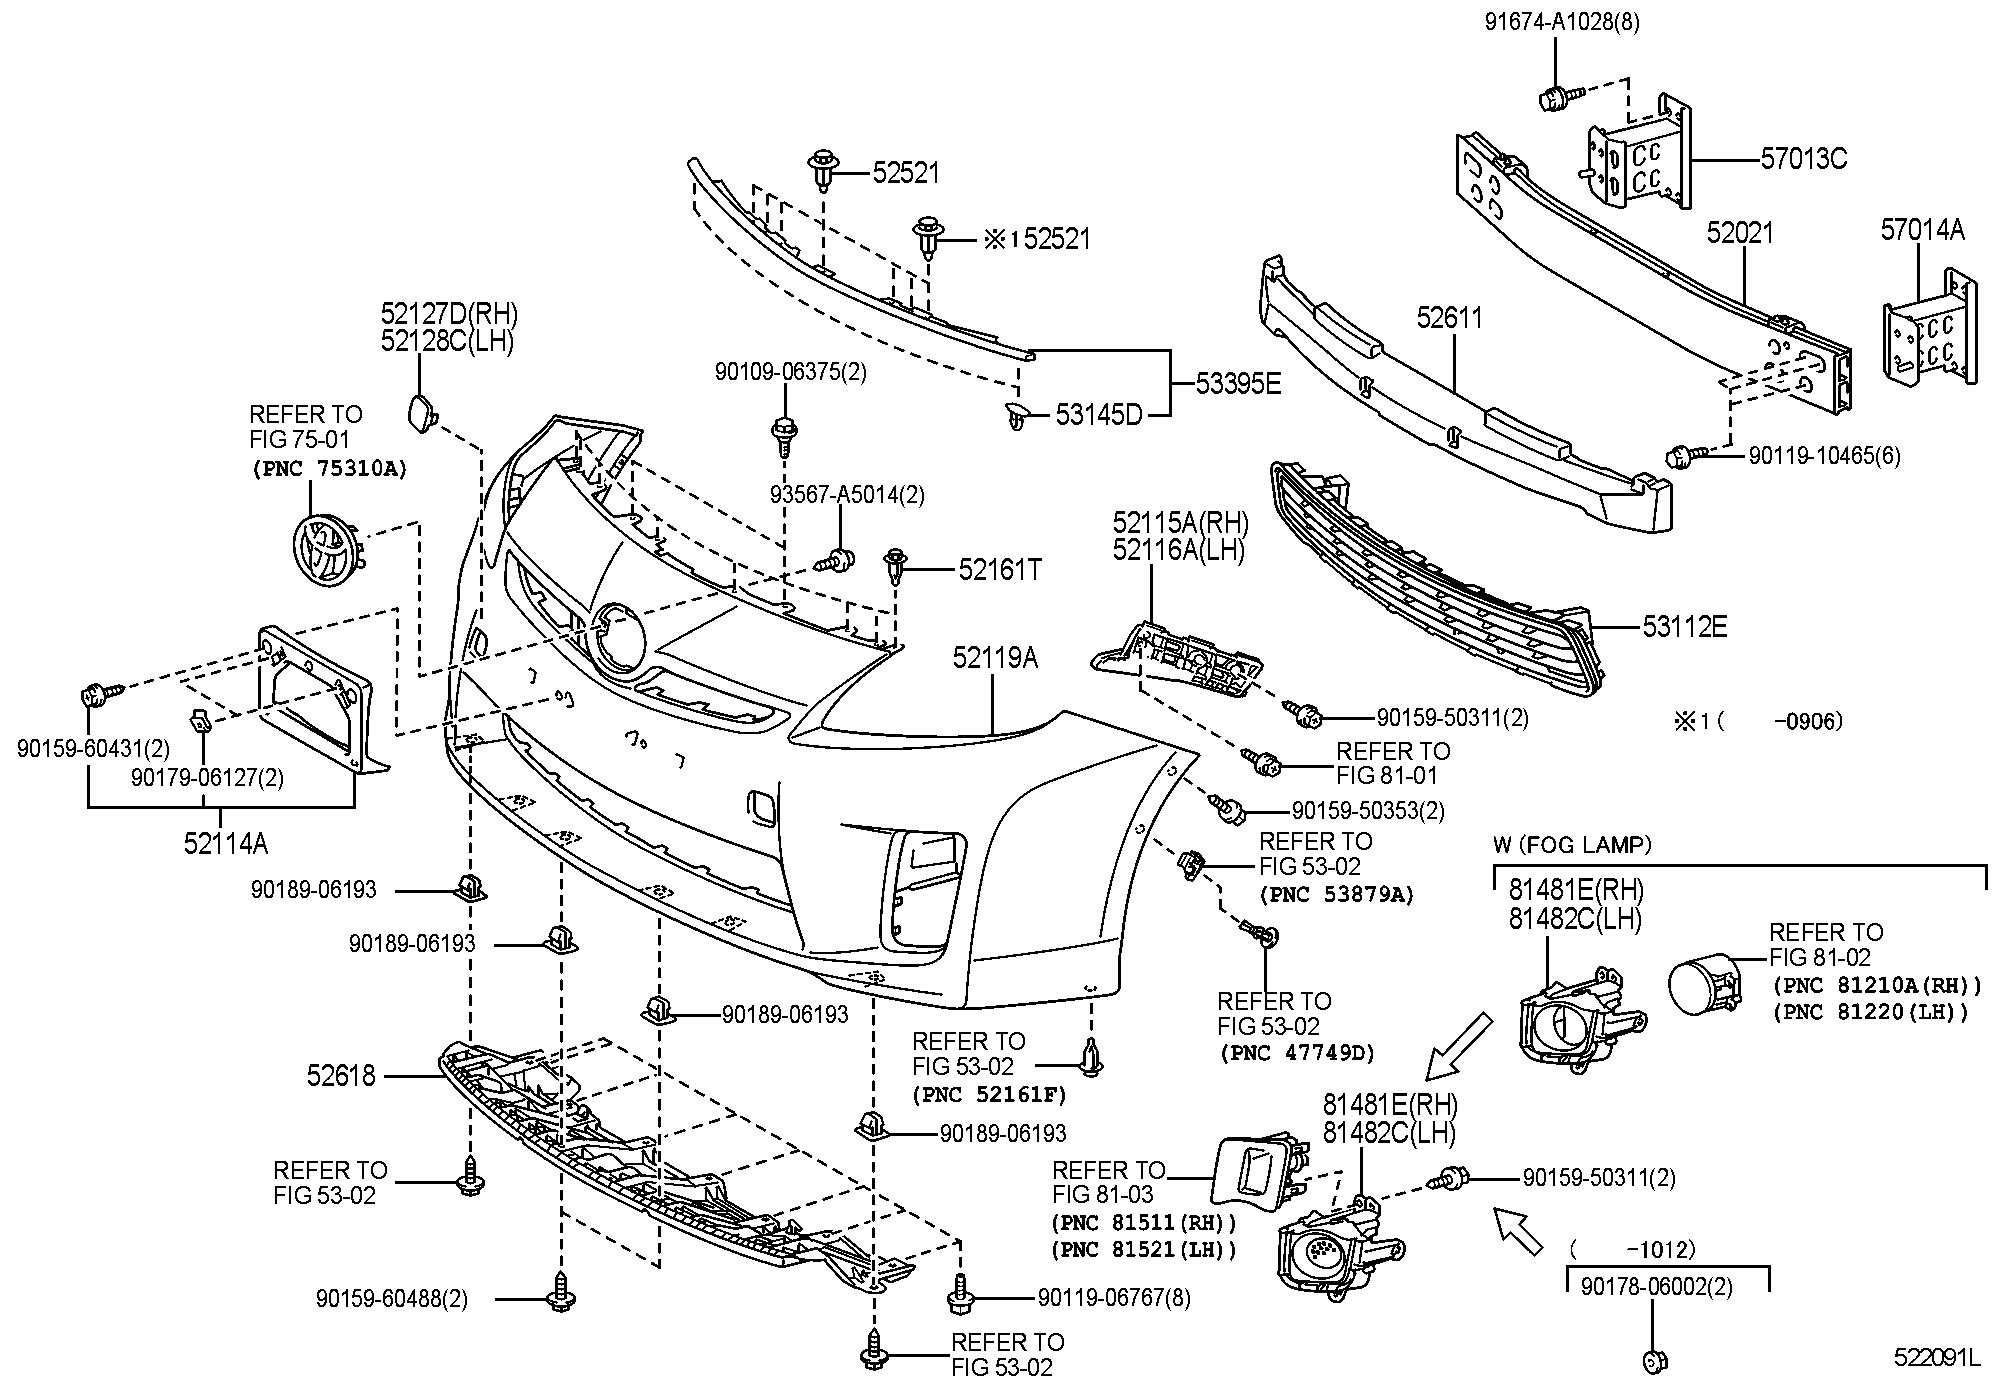 2007 toyota tundra backup camera wiring diagram  toyota